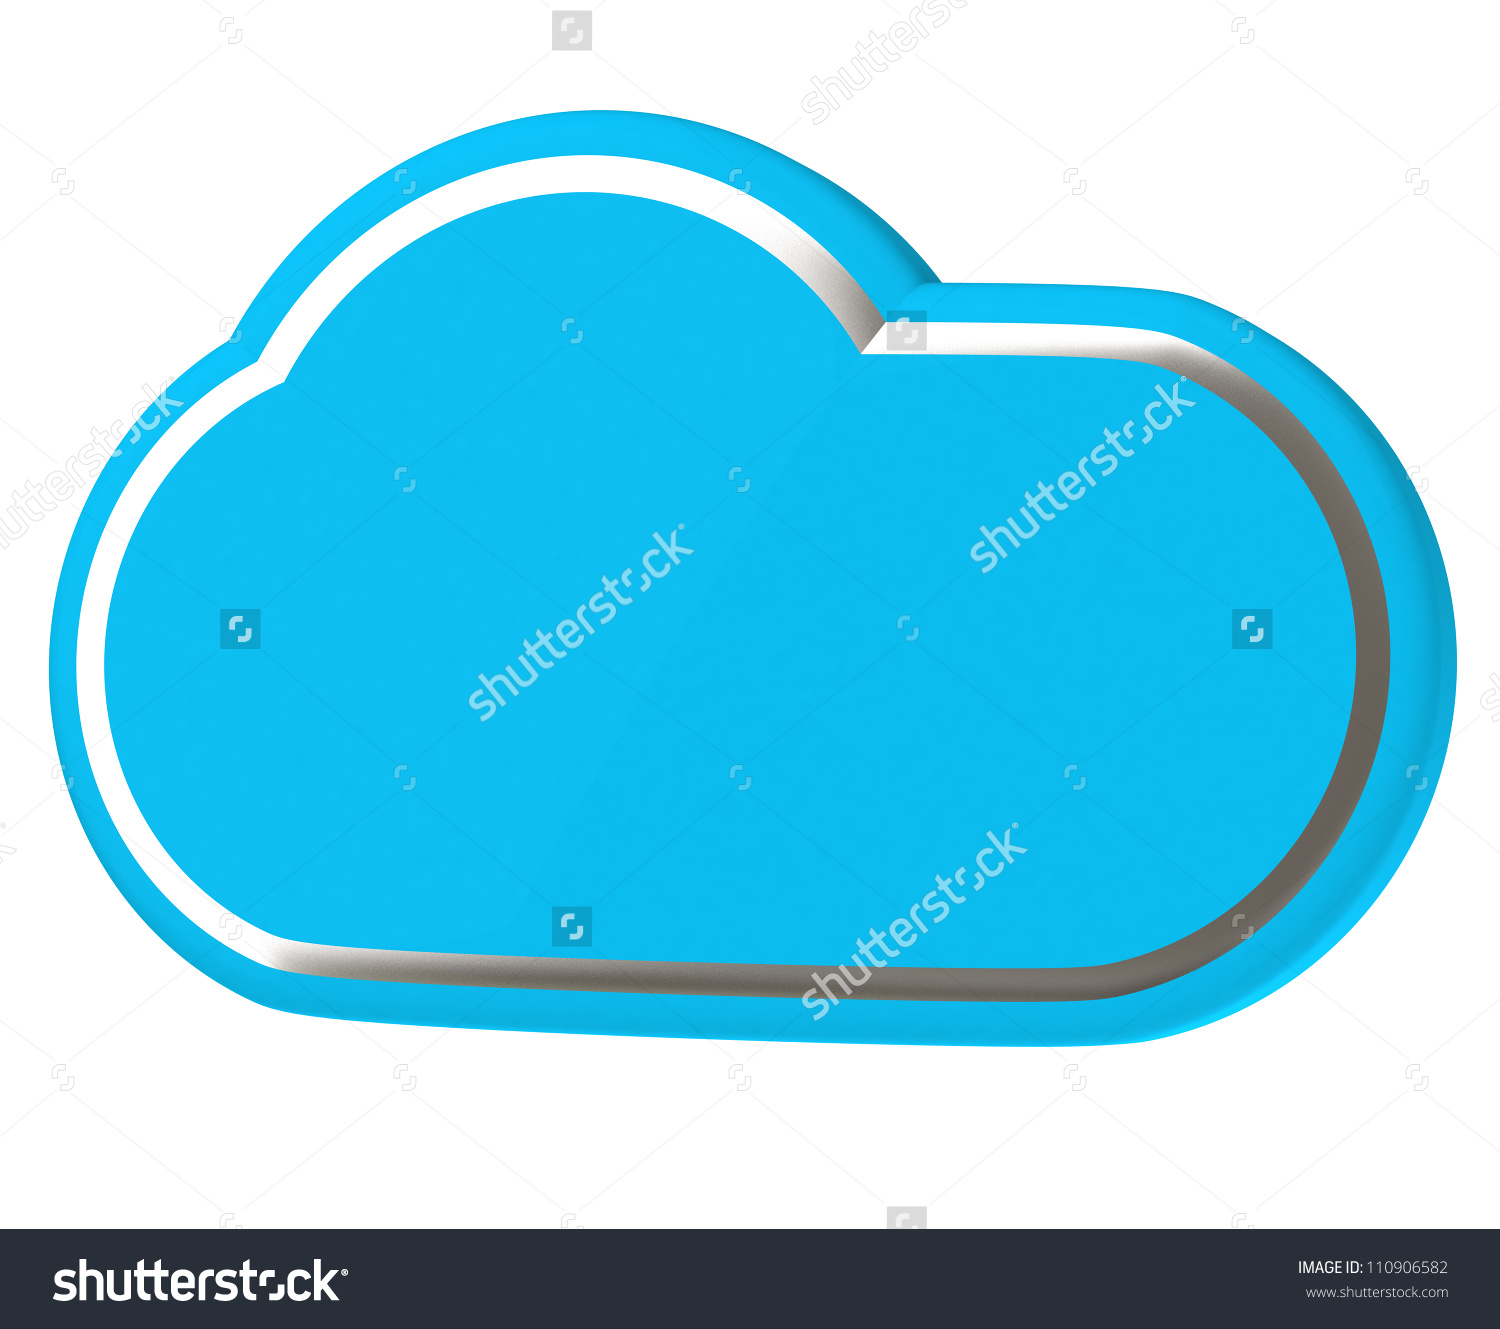 Cloud With Silver Lining 3d Icon Stock Photo 110906582 : Shutterstock.